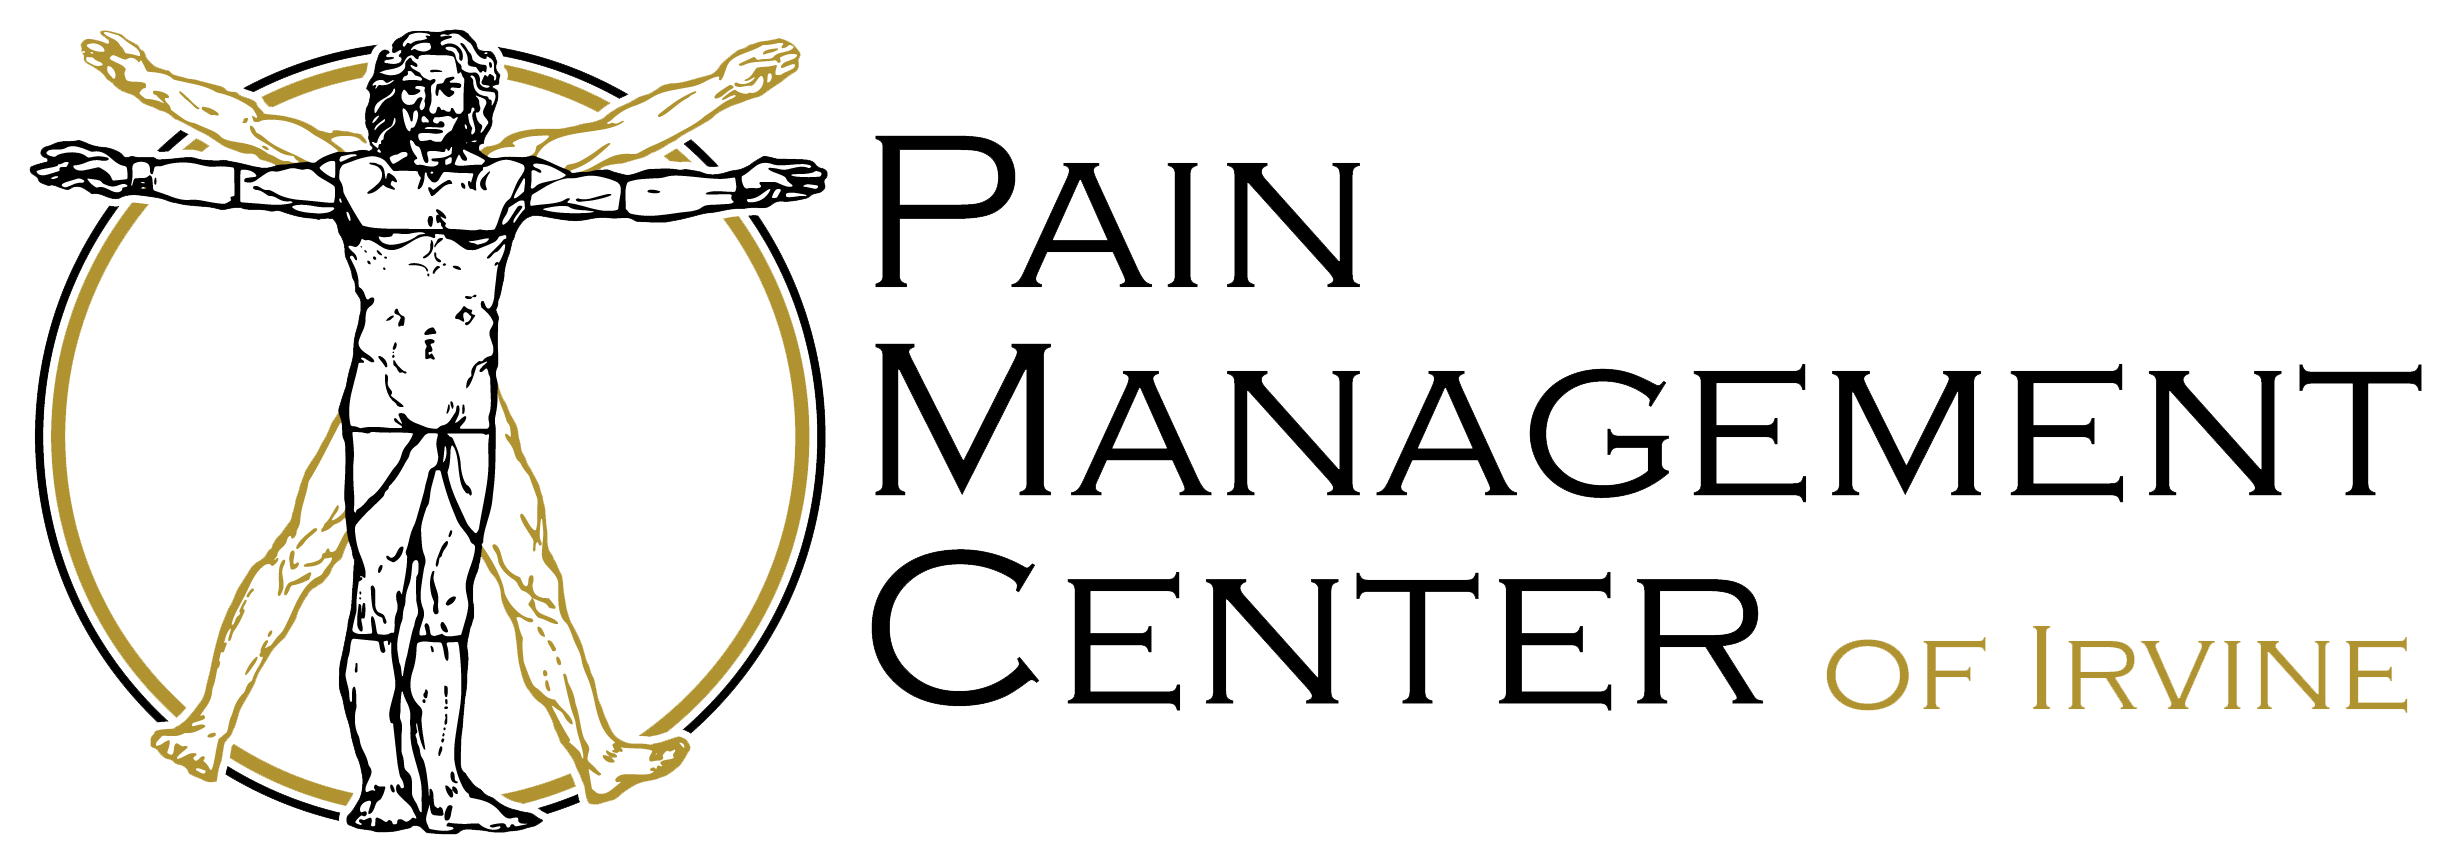 Pain Management Center of Irvine